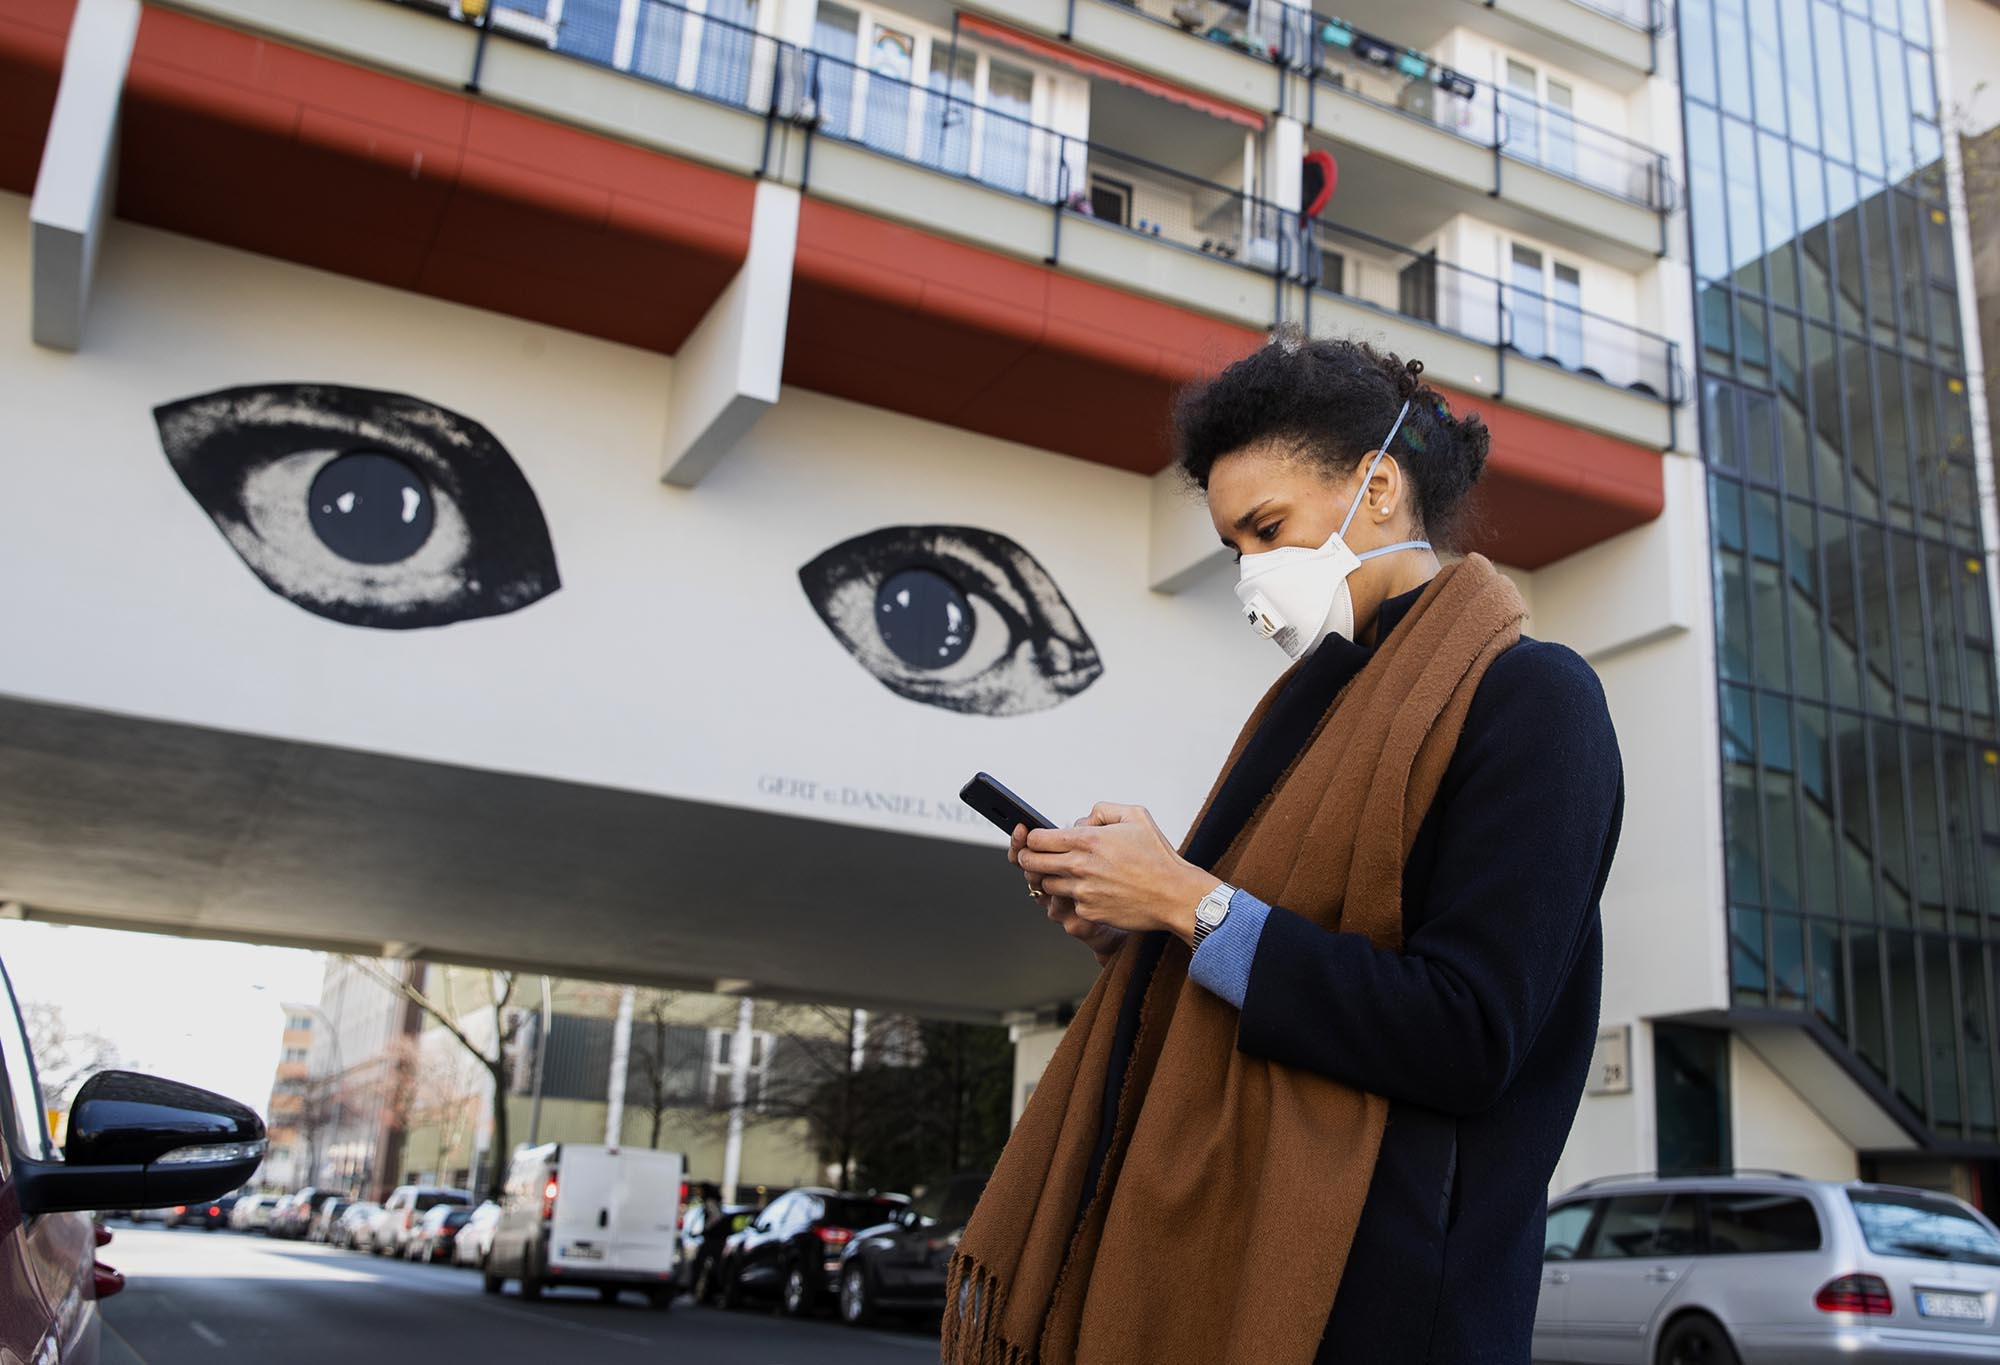 A young woman wearing a protective mask looks at her smartphone while passing by a grafitti representing two big watching eyes in Berlin, Germany on April 1, 2020. Illustrative Editorial (Photo by Emmanuele Contini/NurPhoto via Getty Images)